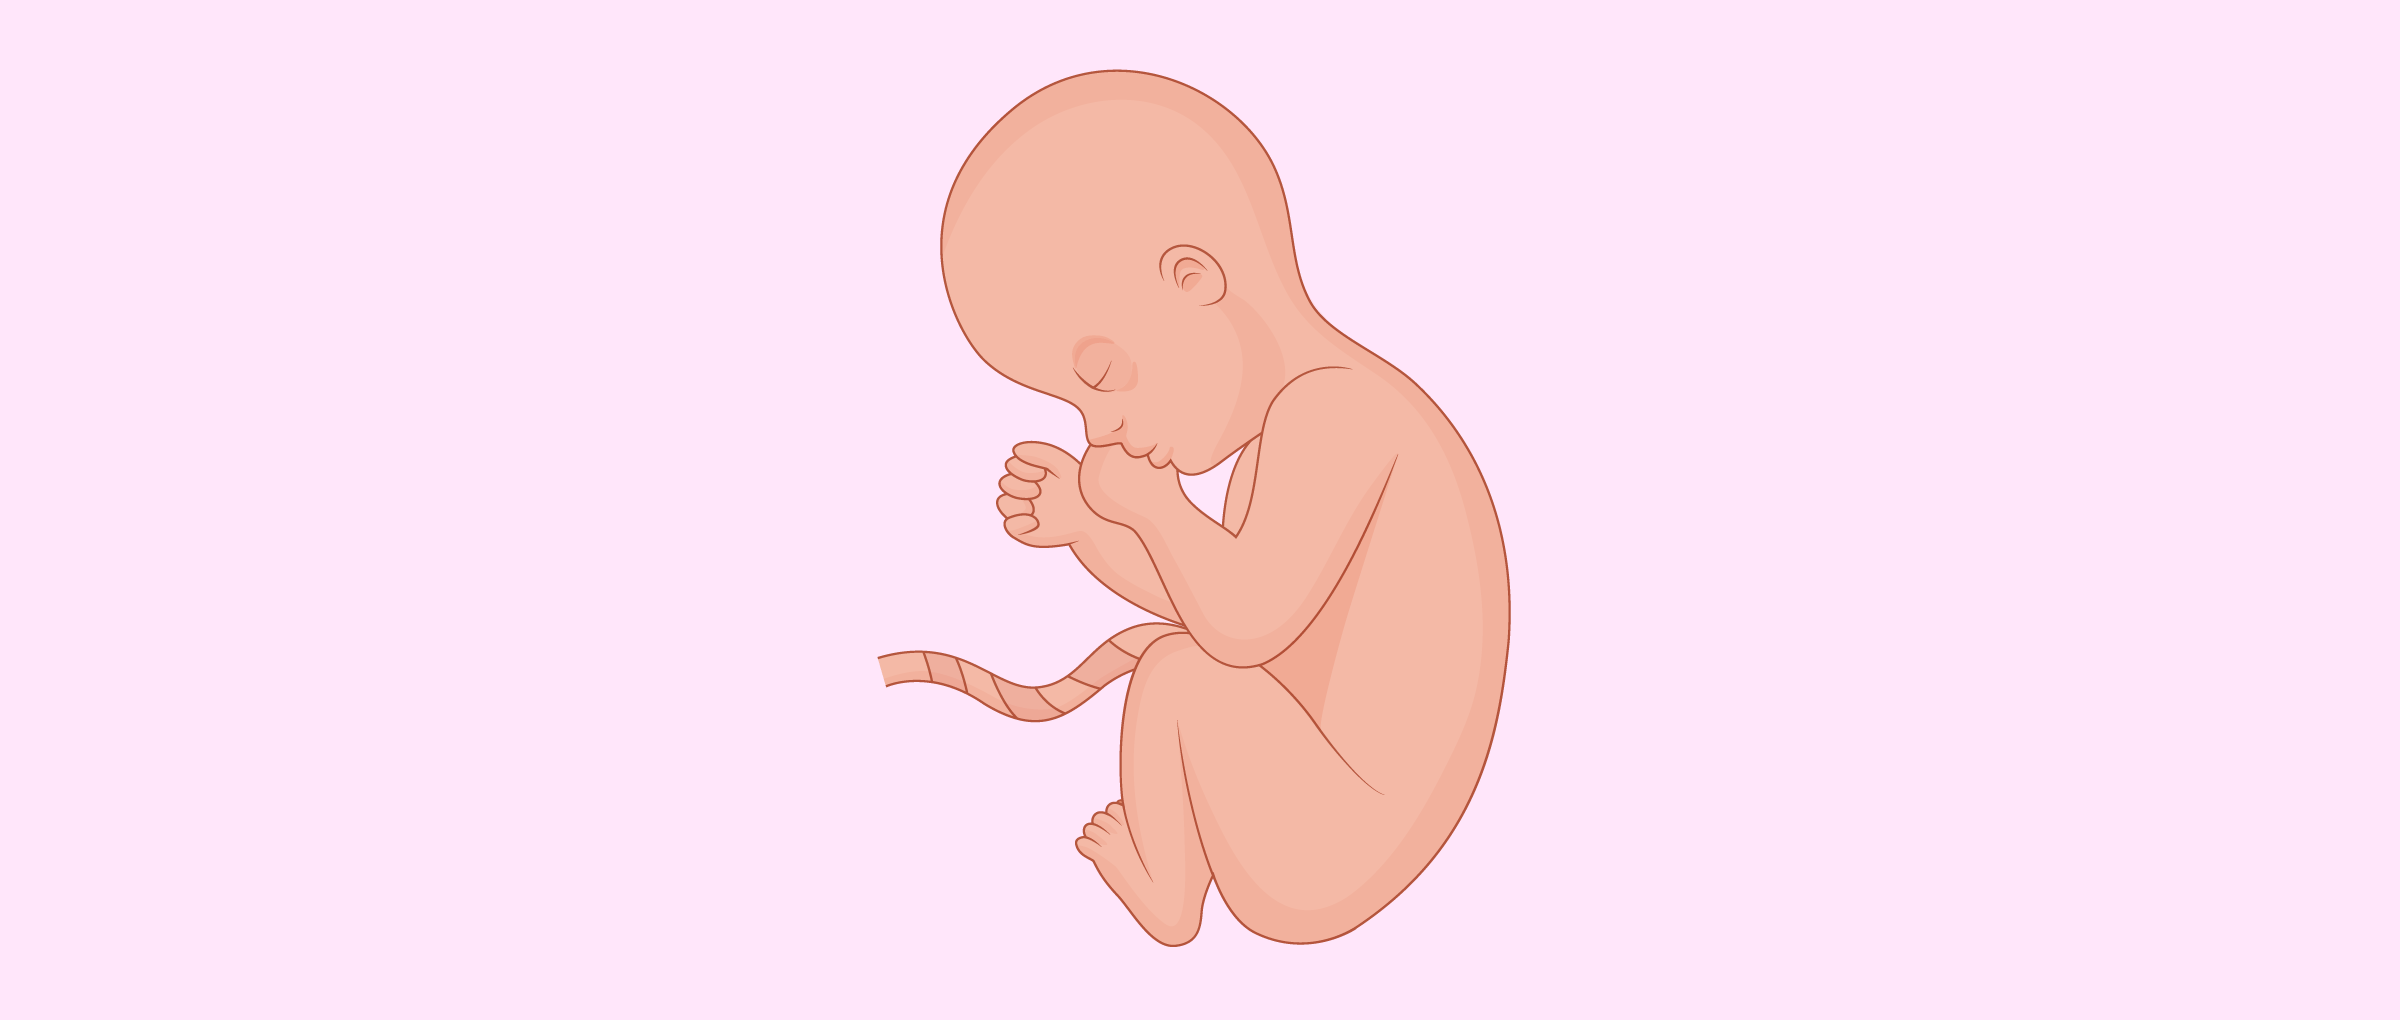 Baby position in 8th month of pregnancy - Fetal Position PNG